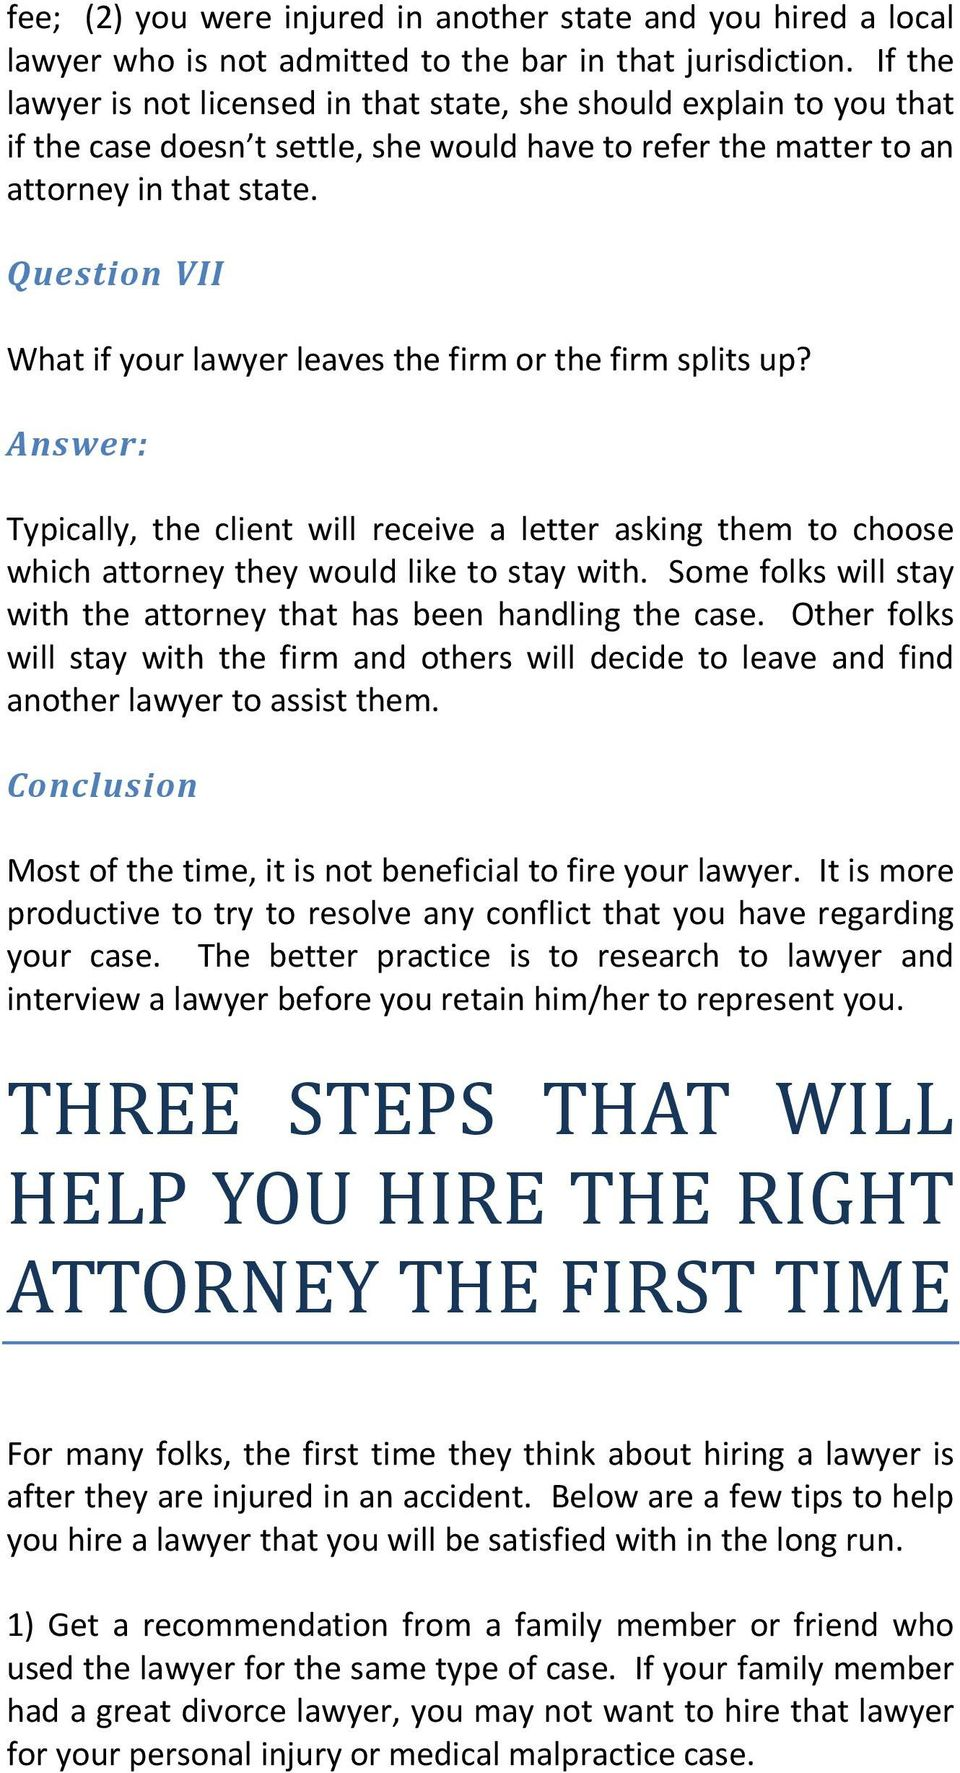 Question VII What if your lawyer leaves the firm or the firm splits up? Typically, the client will receive a letter asking them to choose which attorney they would like to stay with.